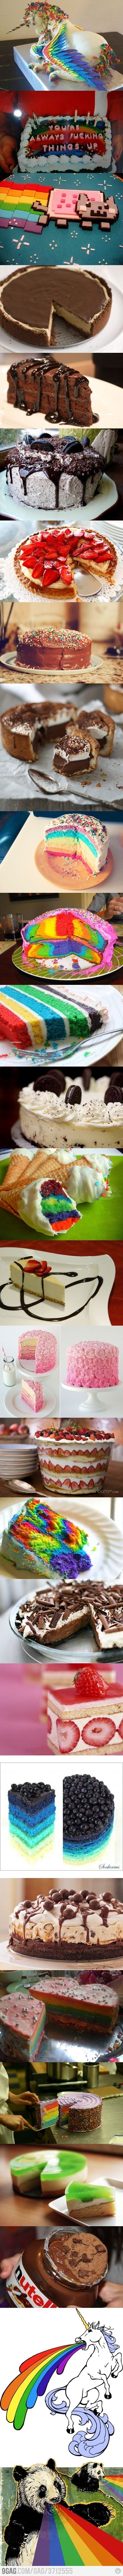 Some crazy & awesome cakes. :D